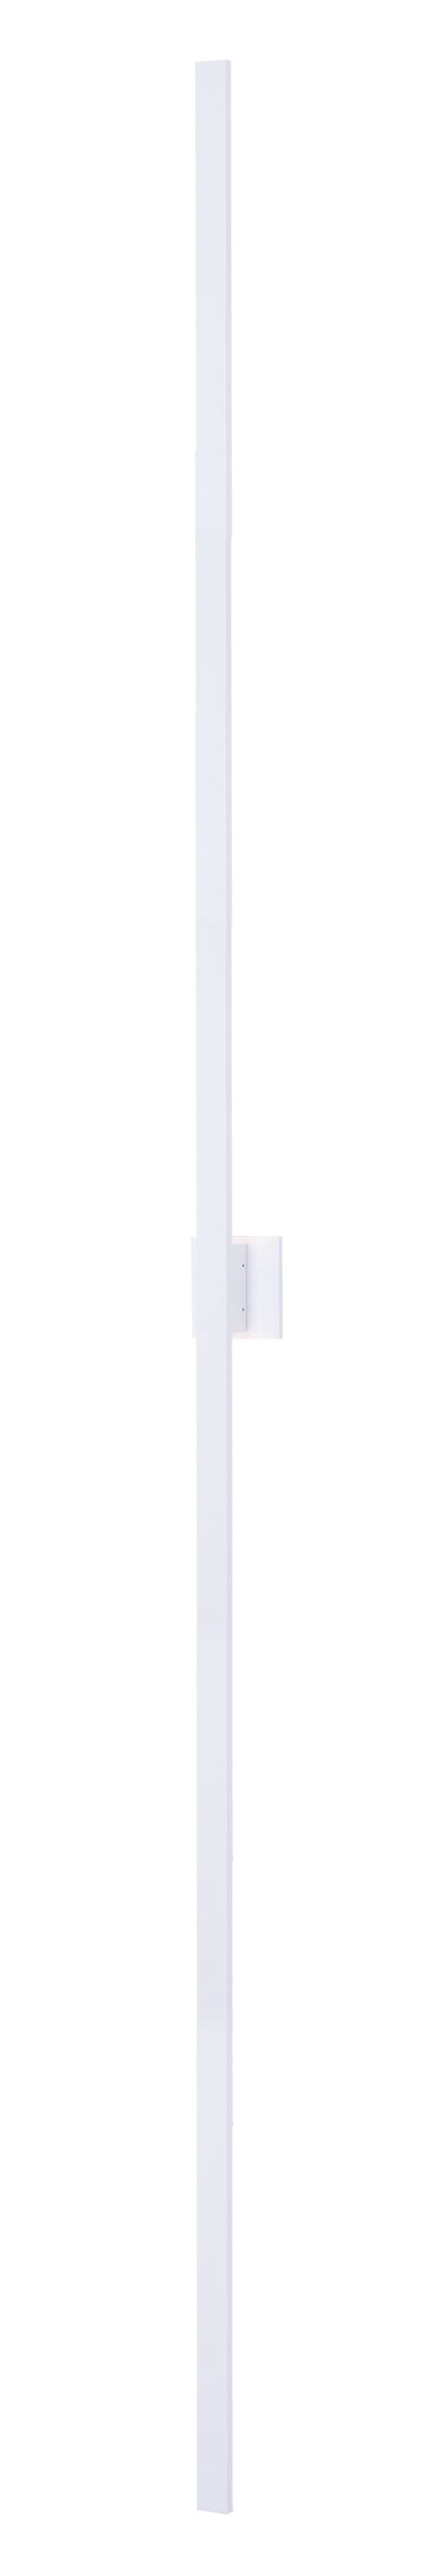 """Alumilux Sconce 96"""" 2 Light Outdoor Wall Mount Light in White"""